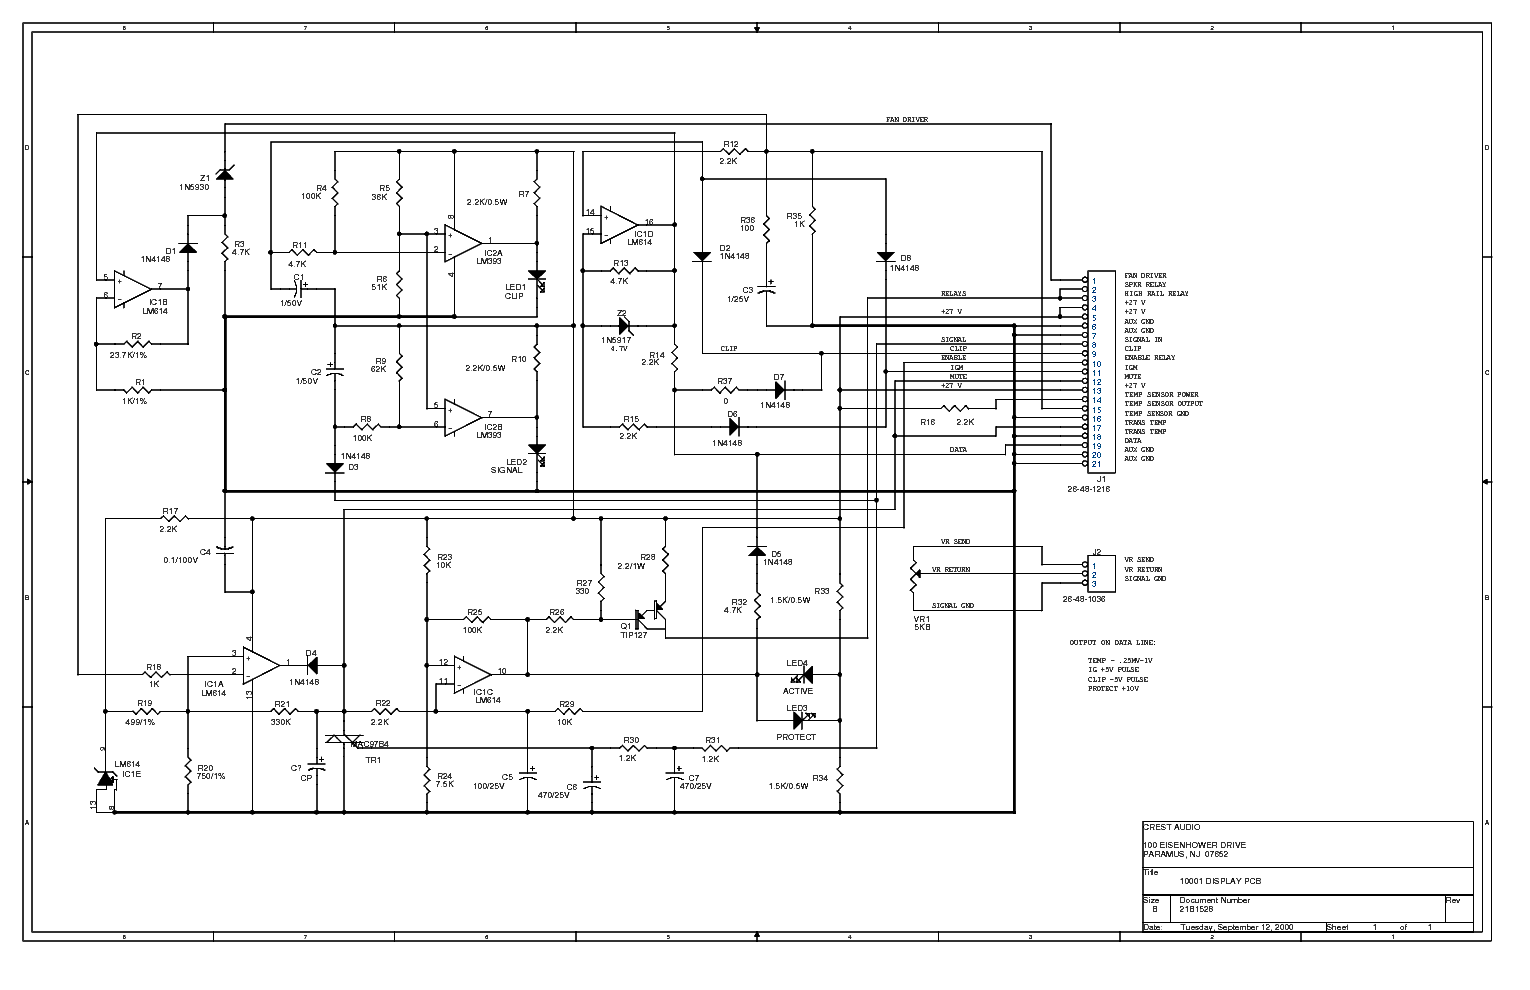 CRESTAUDIO PRO 10001 Service Manual download, schematics